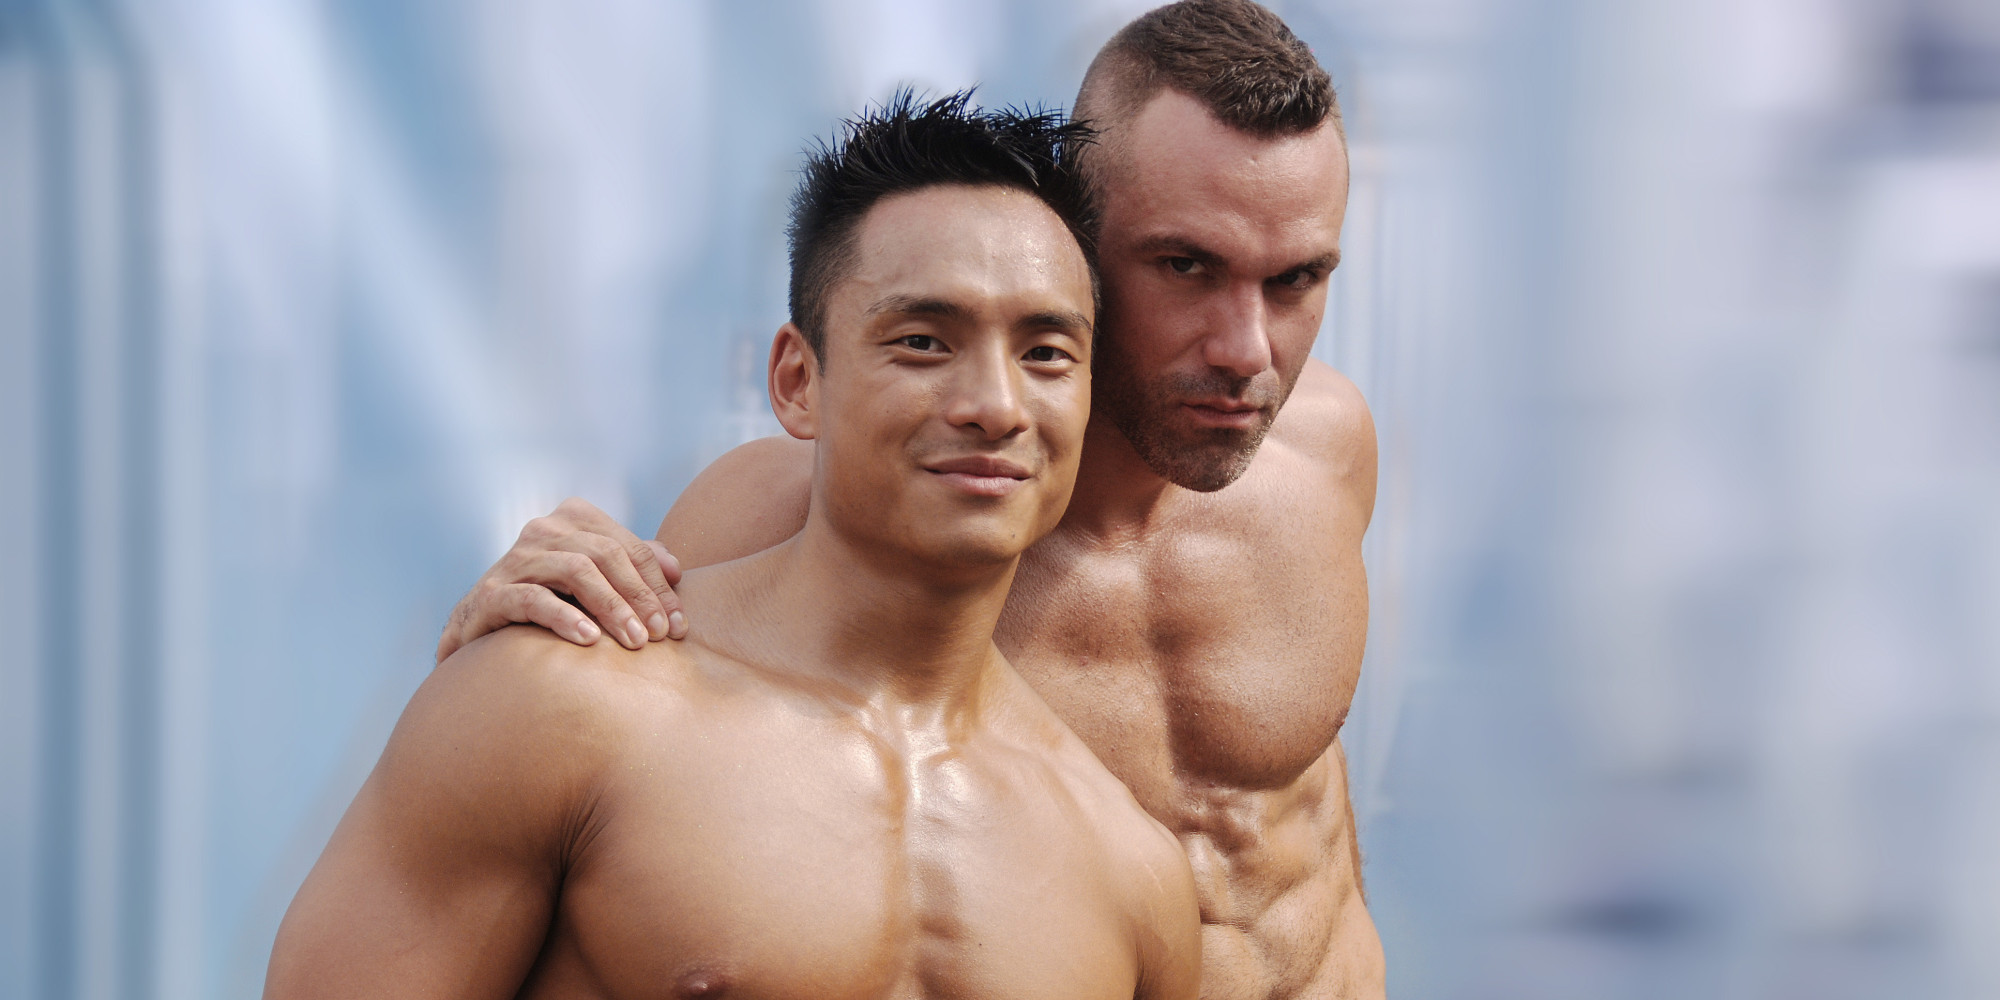 PROBALITY OF CONTRACTING HIV GAY BOTTOM